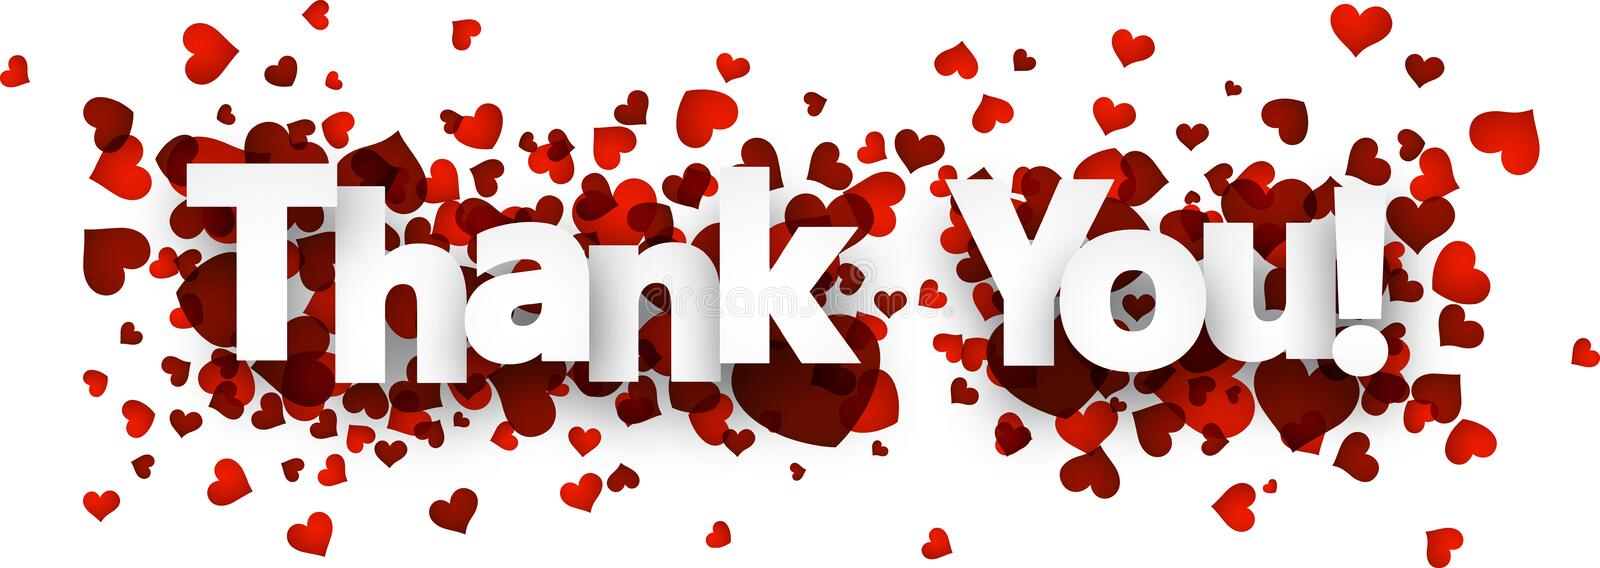 Thank you card vector illustration